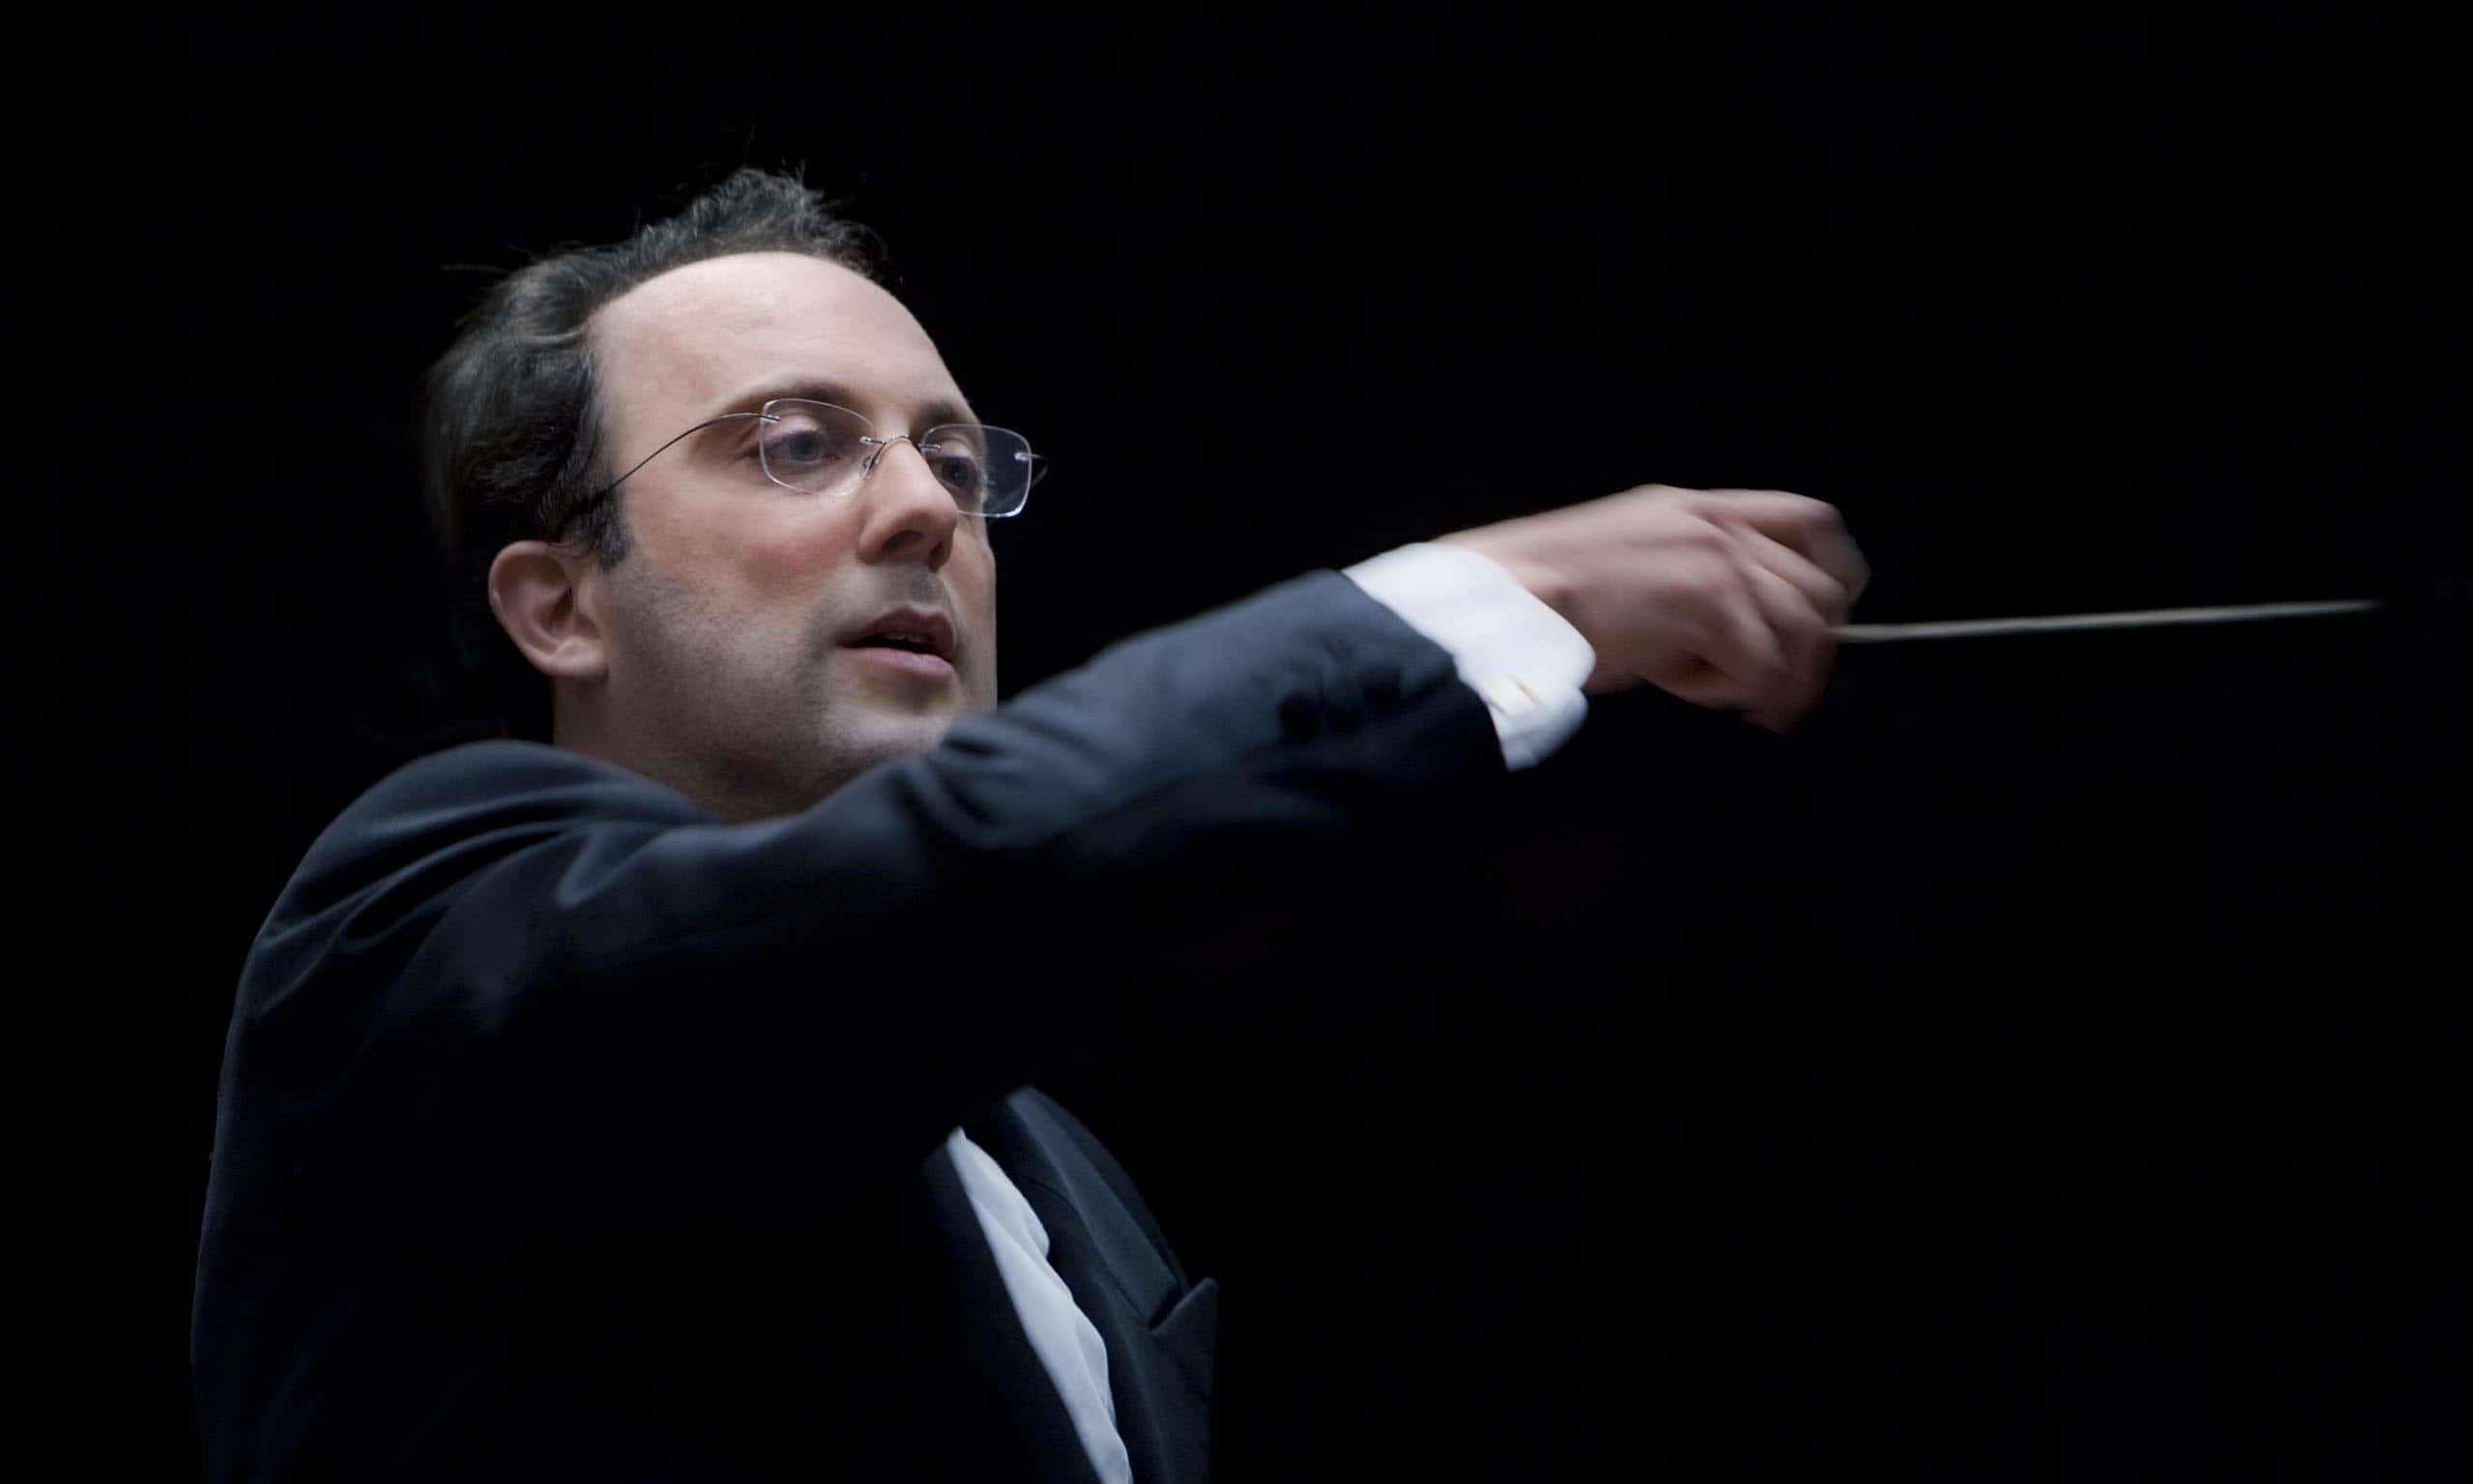 The next German Ring conductor will be British